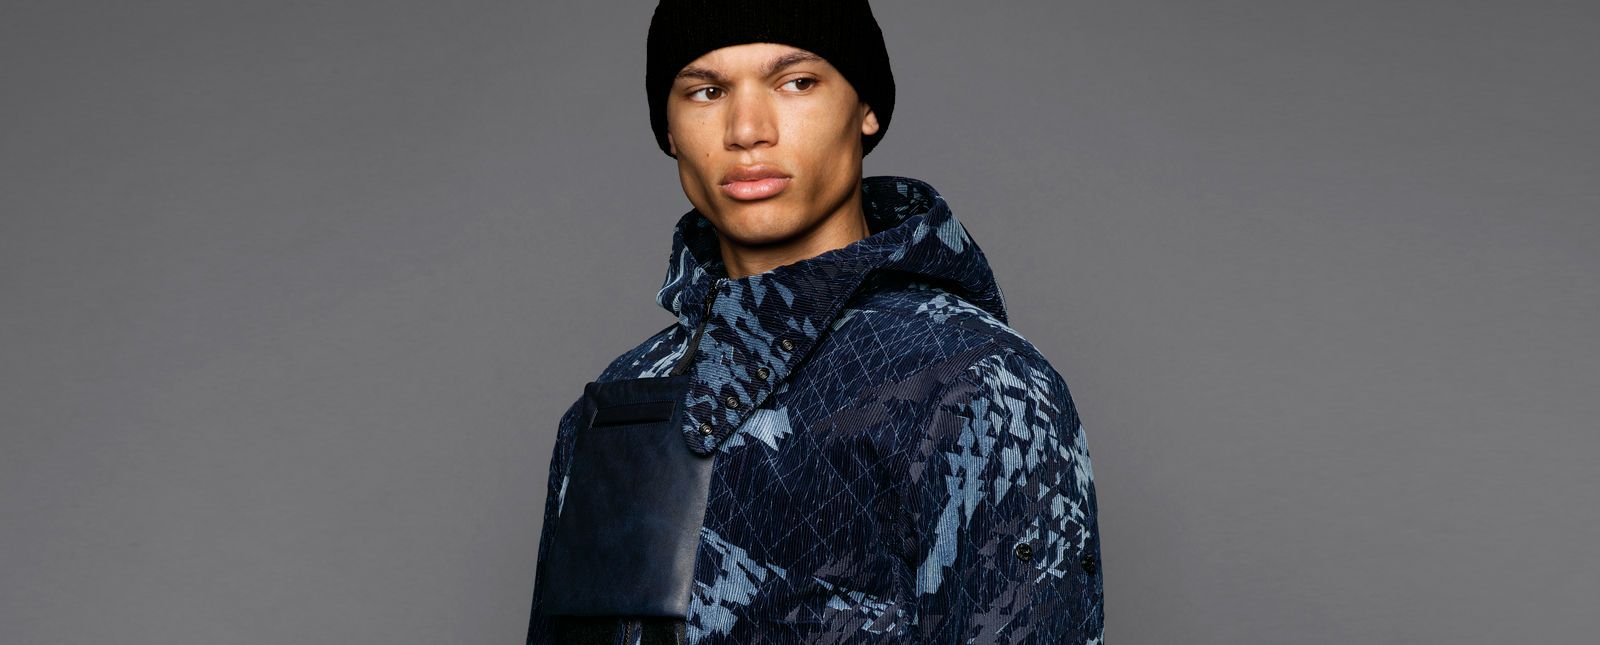 Model wearing short hooded jacket in an abstract pattern of dark and light blue hues, with a zipper pocket on the side and a square leather pocket on the chest